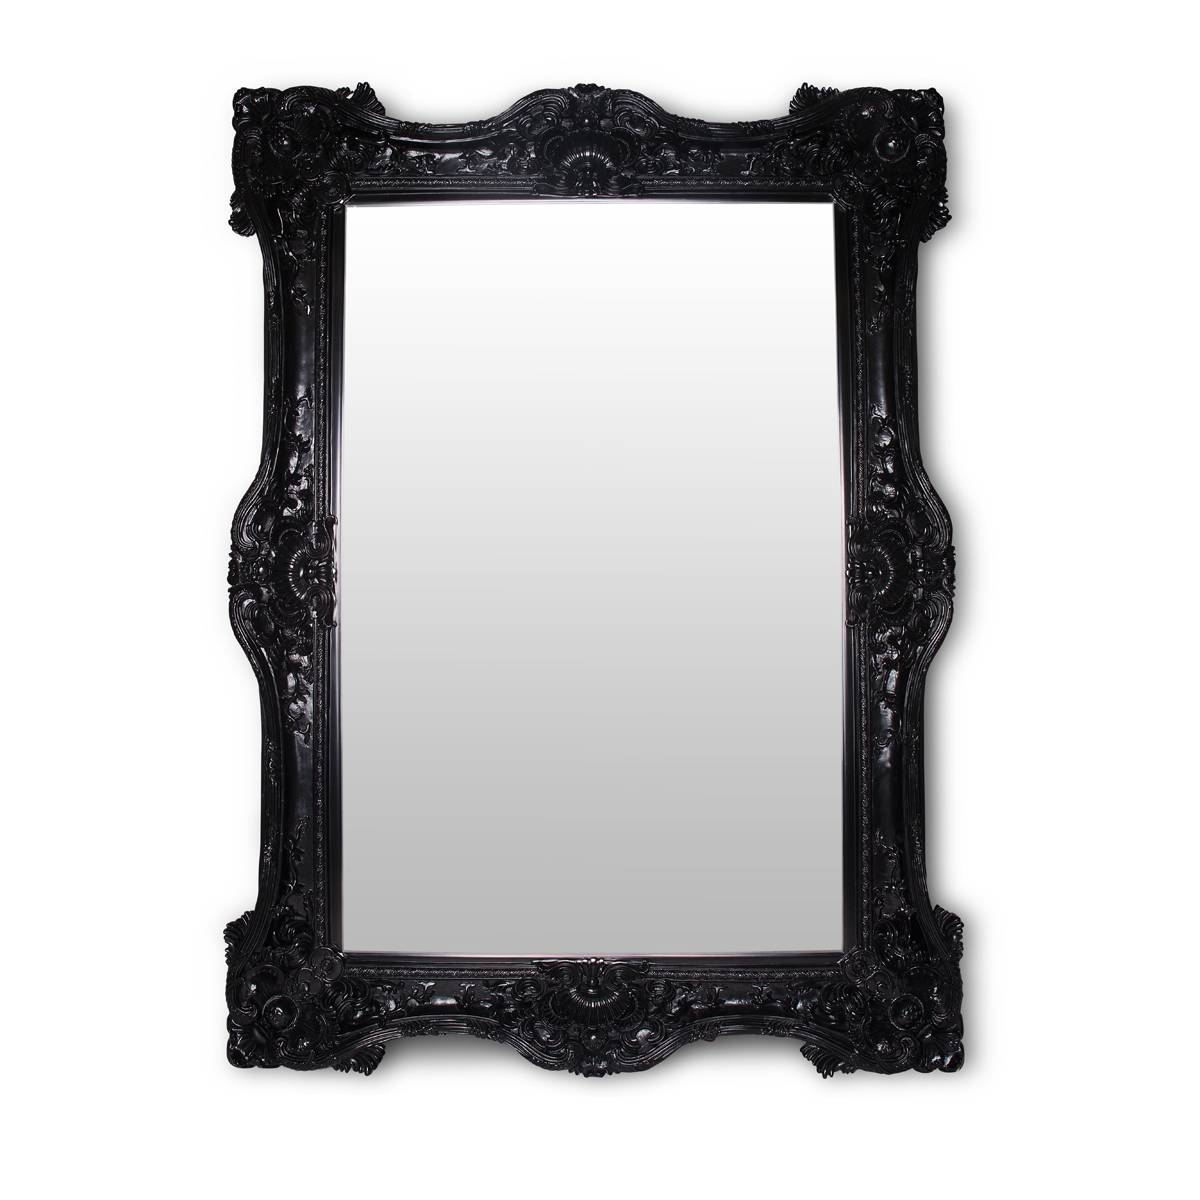 25 ideas of black baroque mirrors for Better homes and gardens baroque wall mirror